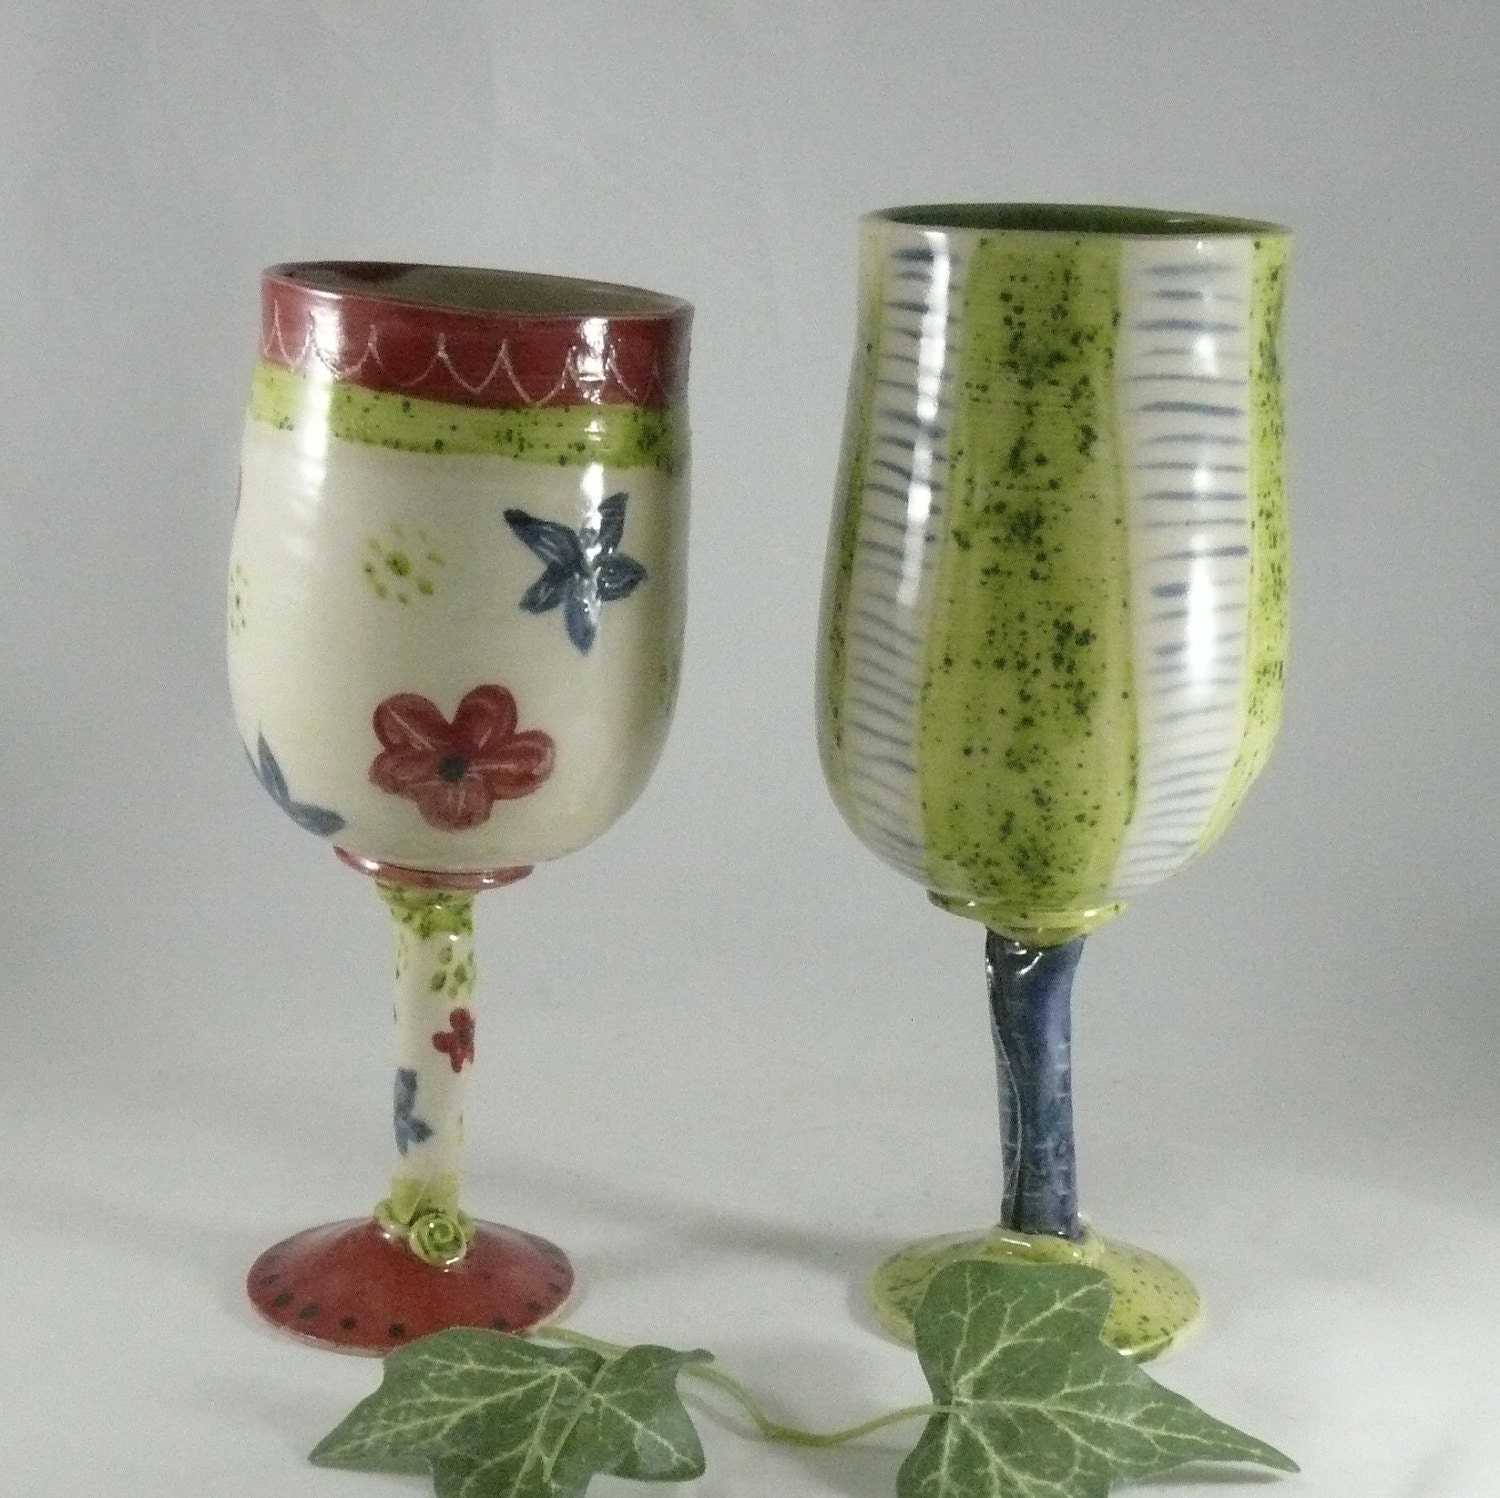 Quirky Wedding Wine Glass Funky Bridal Wine Or Parfait Glass